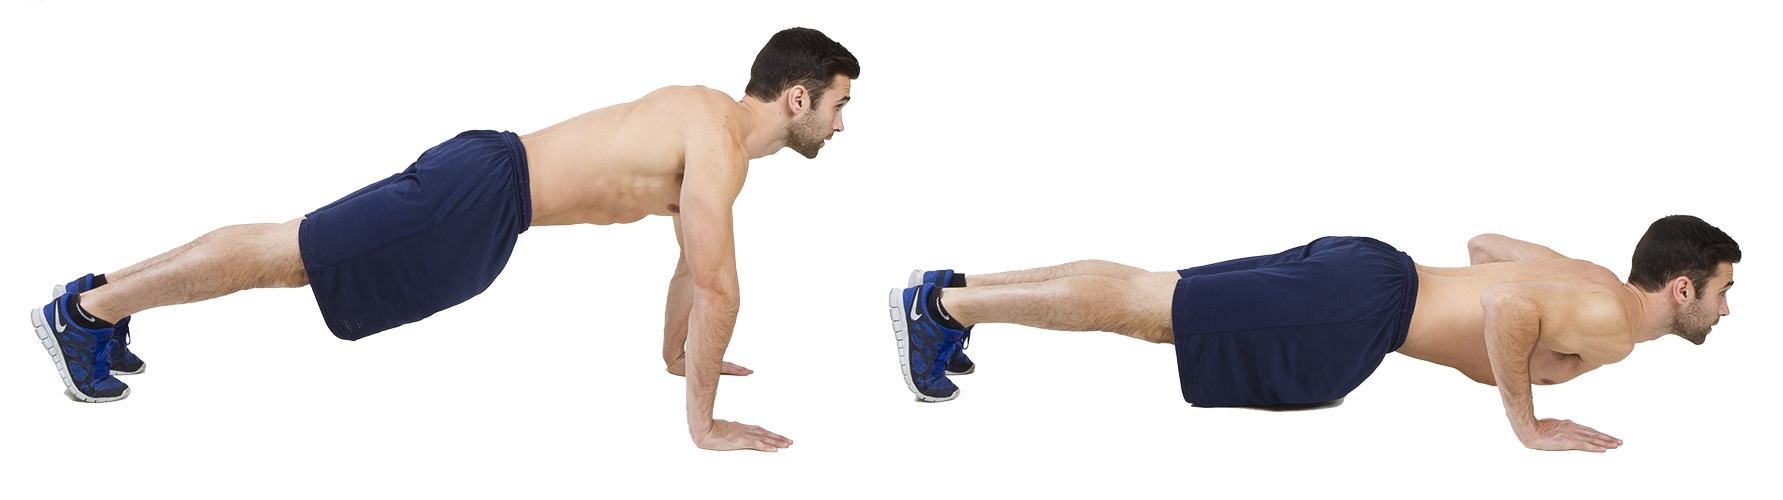 HIIT Exercise: How To Do Push Ups